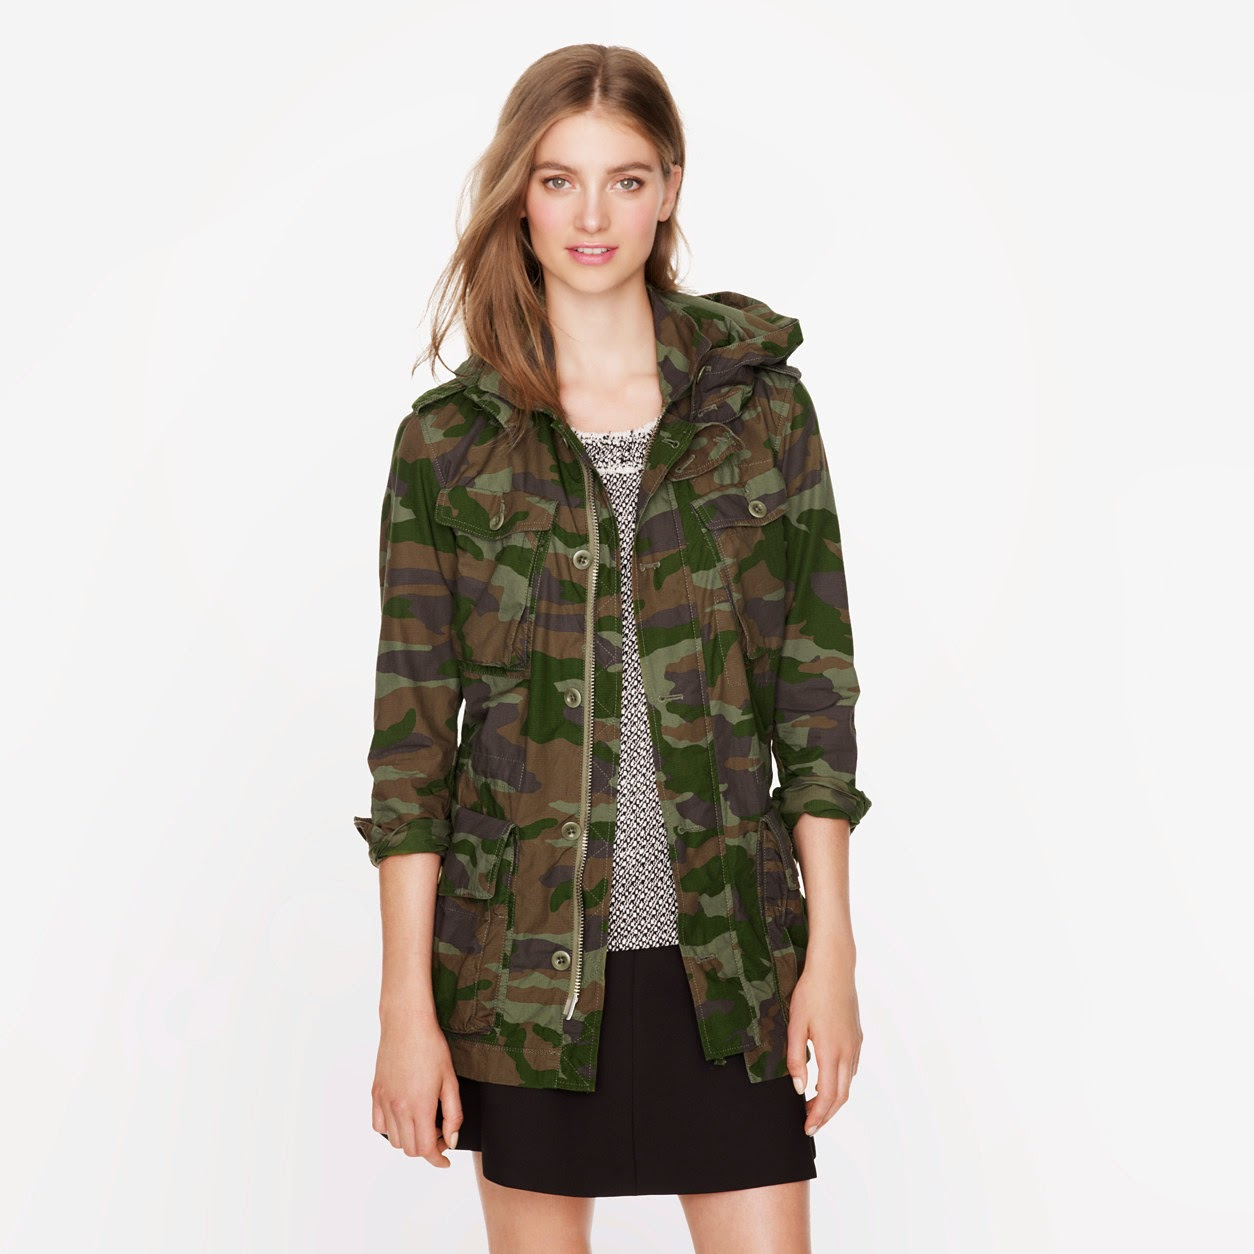 6d63da6e *Similarly is the C.Wonder Washed Cotton Camo Printed Anorak